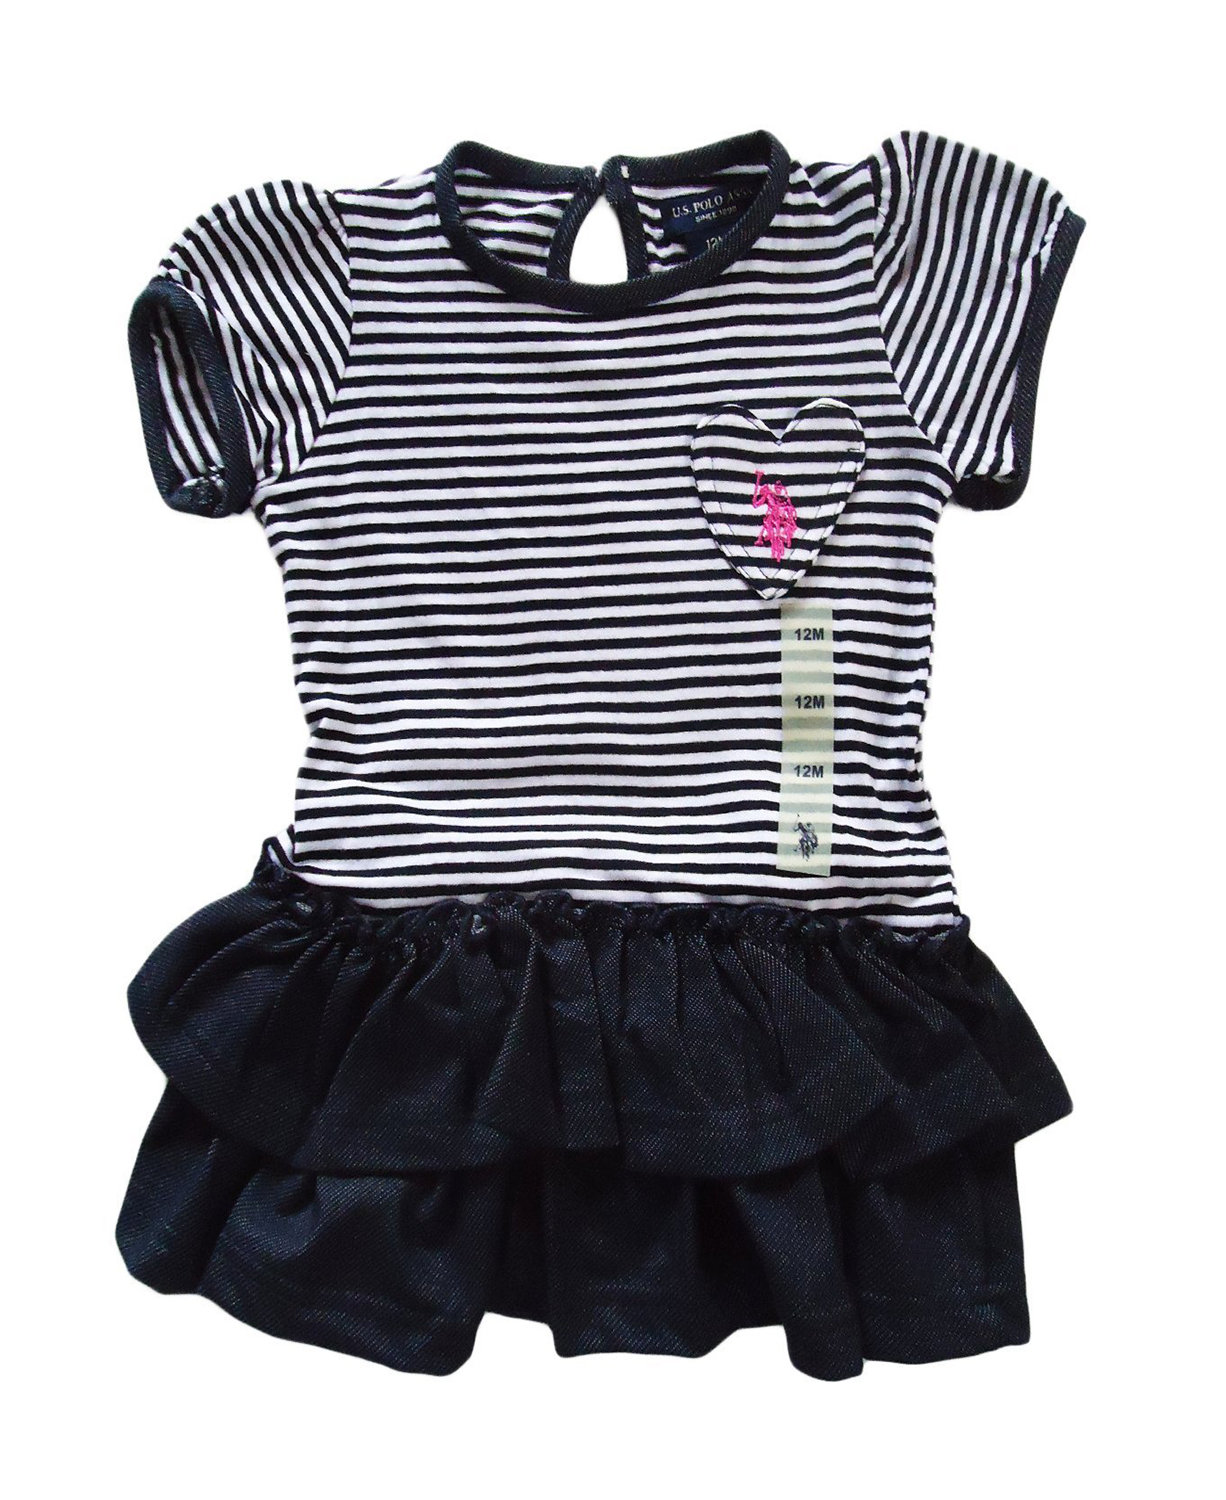 700243f53f US Polo ASSN Kids Cutest Ever Baby Girl Dress - Baby Clothes, Baby ...